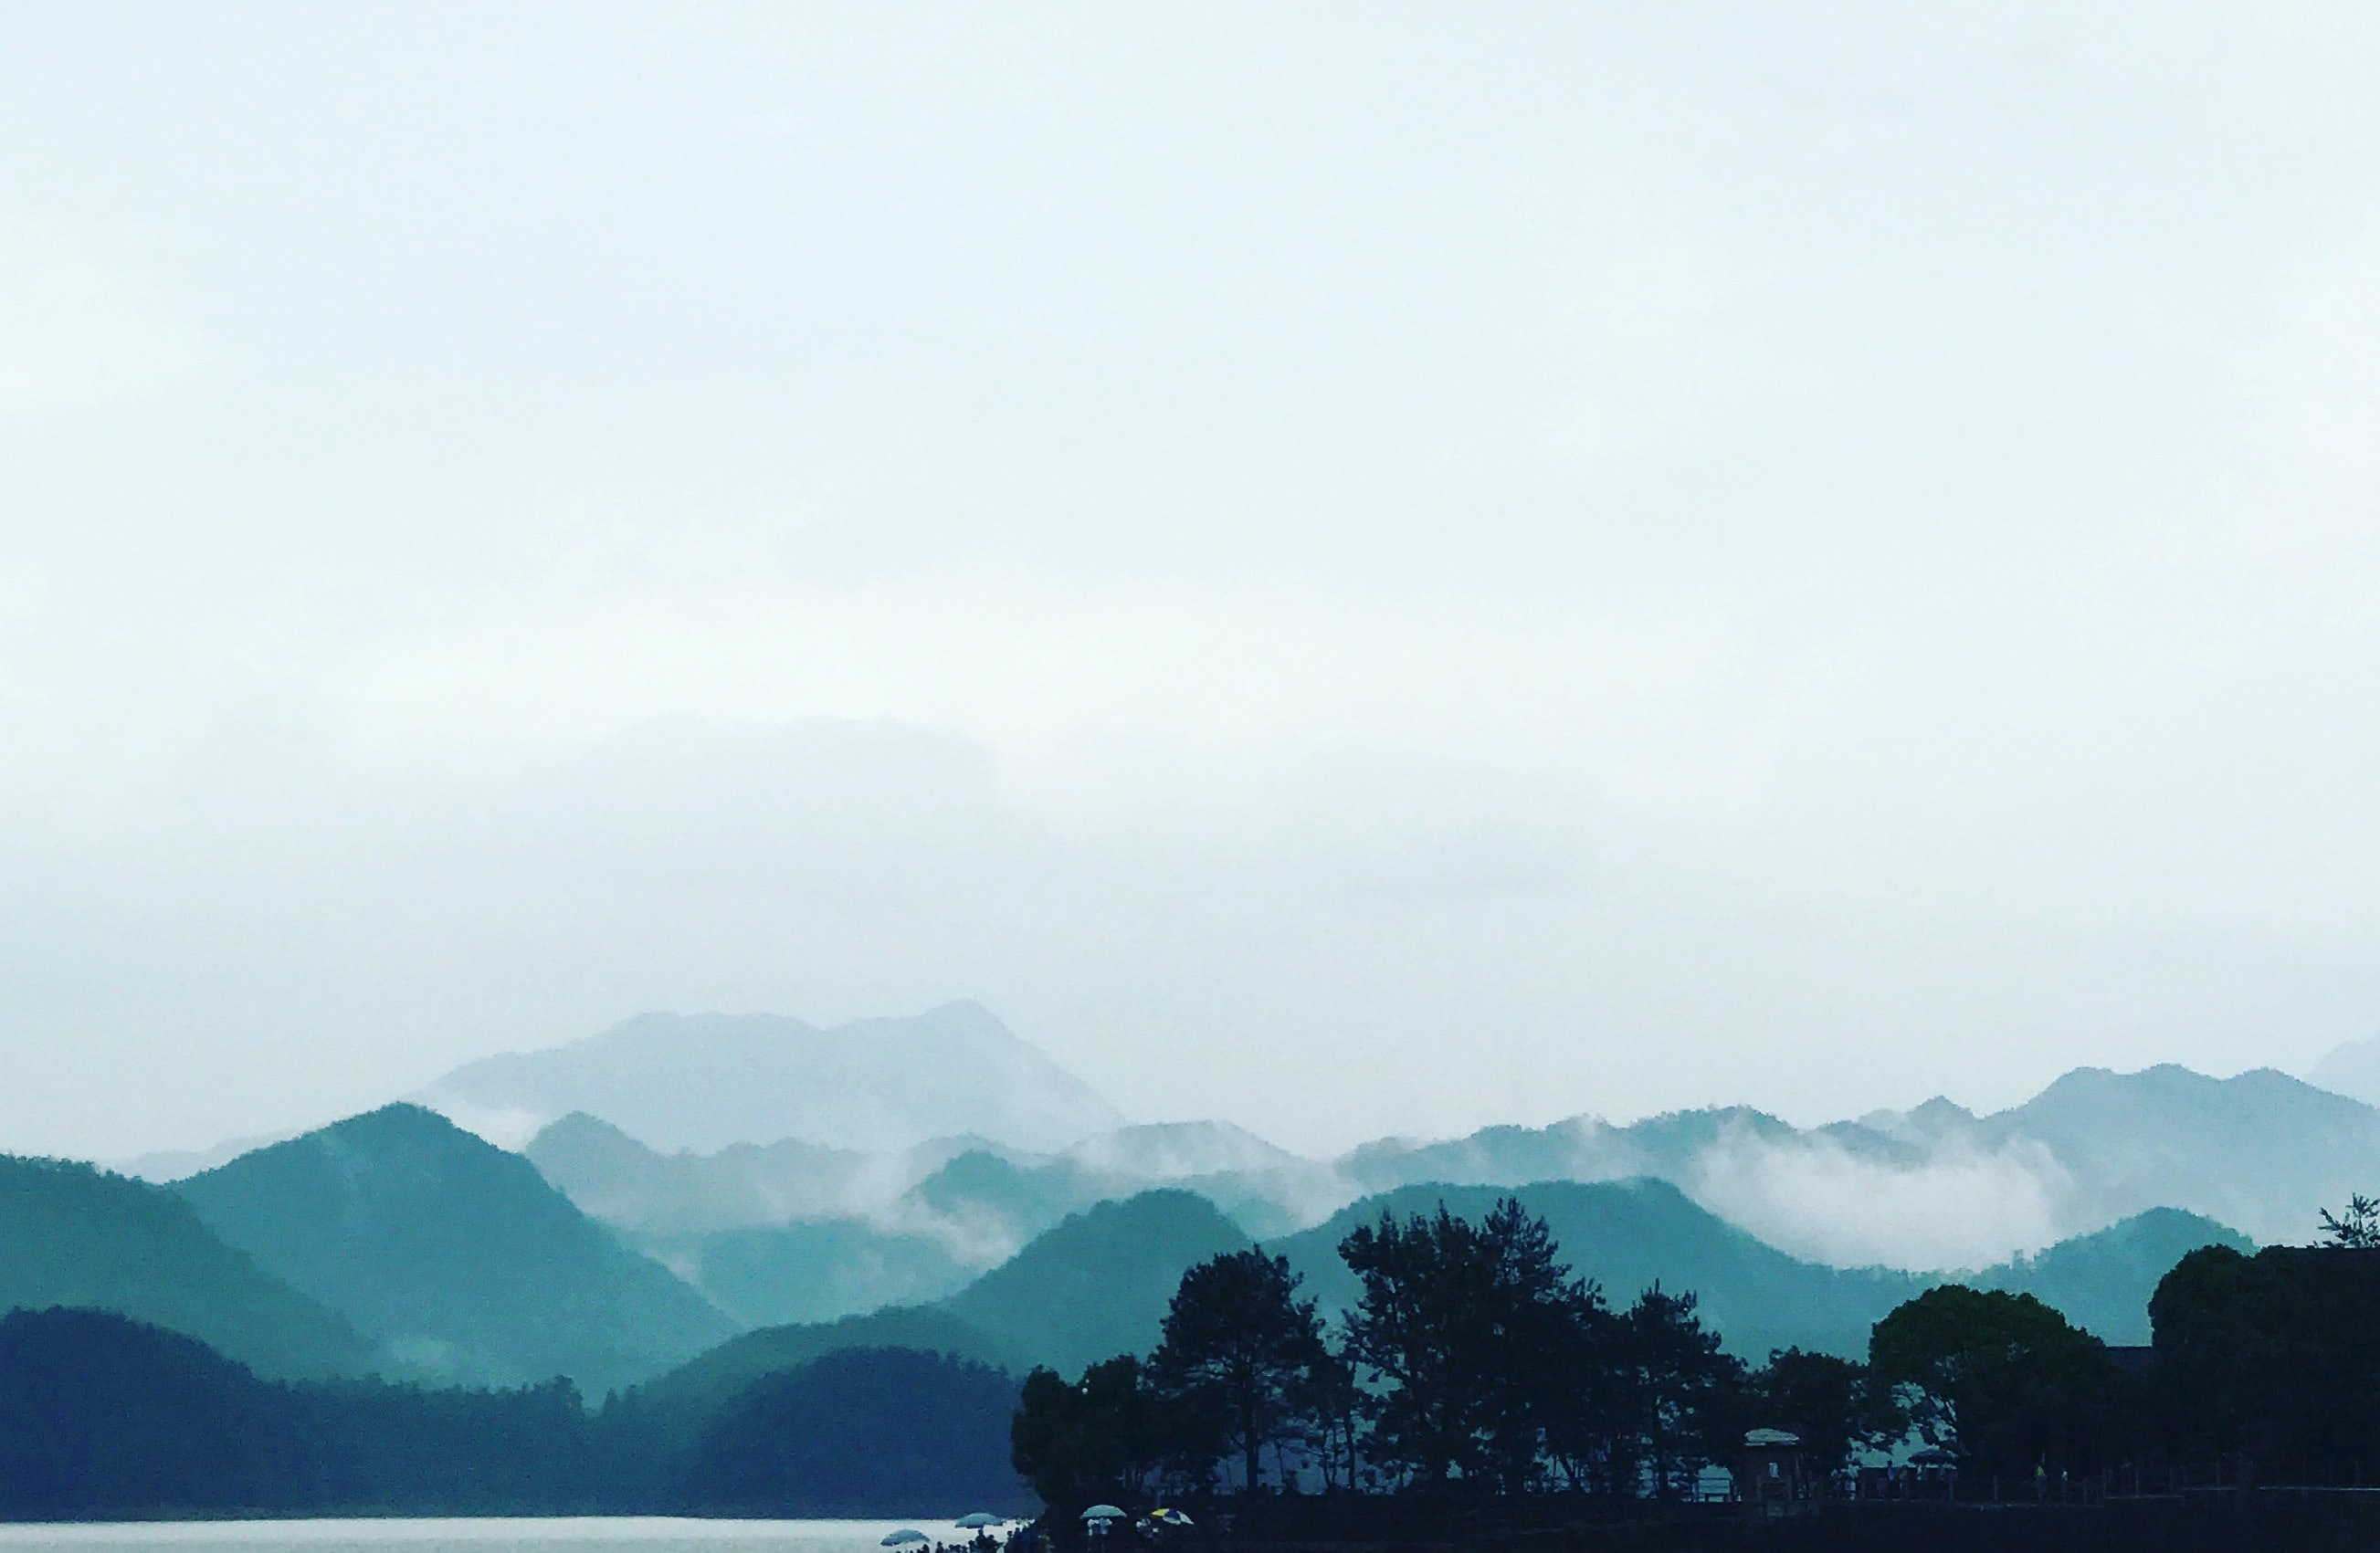 landscape photography of mountains nearby sea